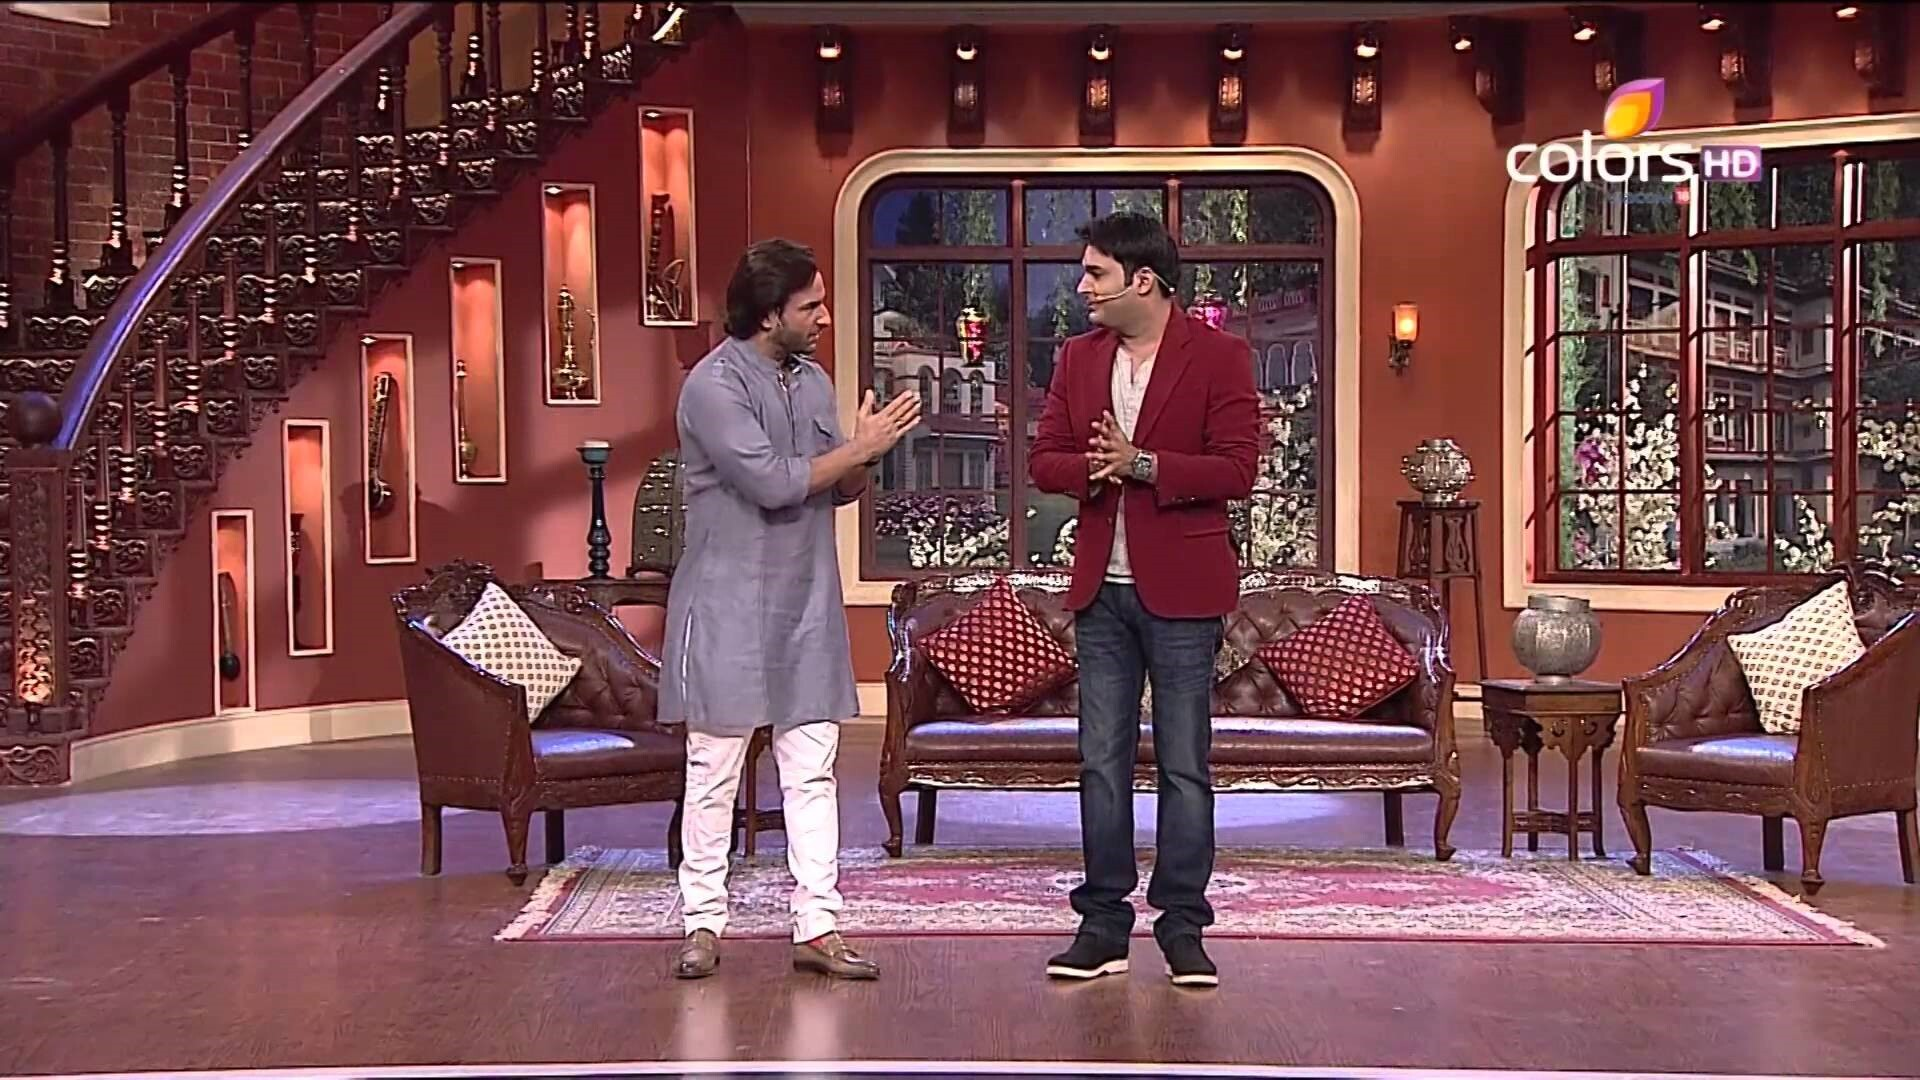 Wallpaper download comedy - Comedy Nights With Kapil Wallpapers